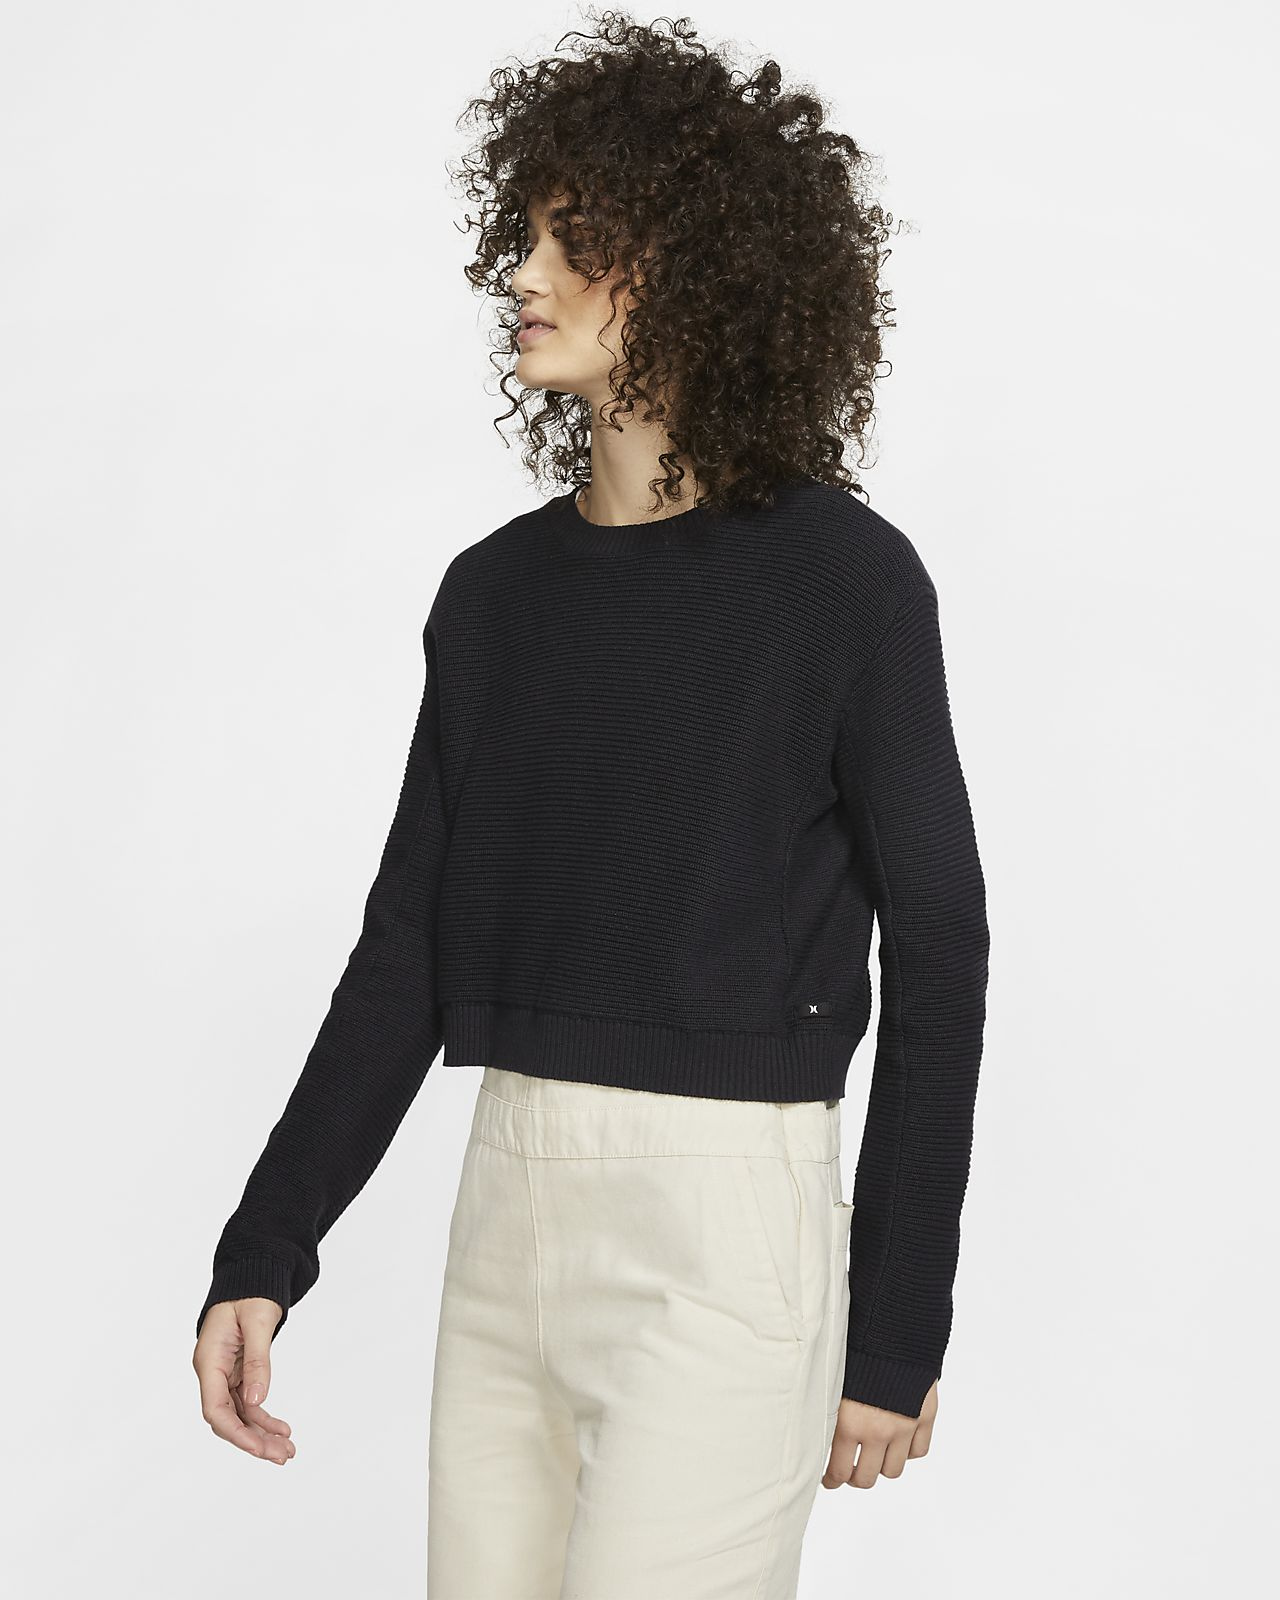 Camisola Hurley Sweater Weather para mulher